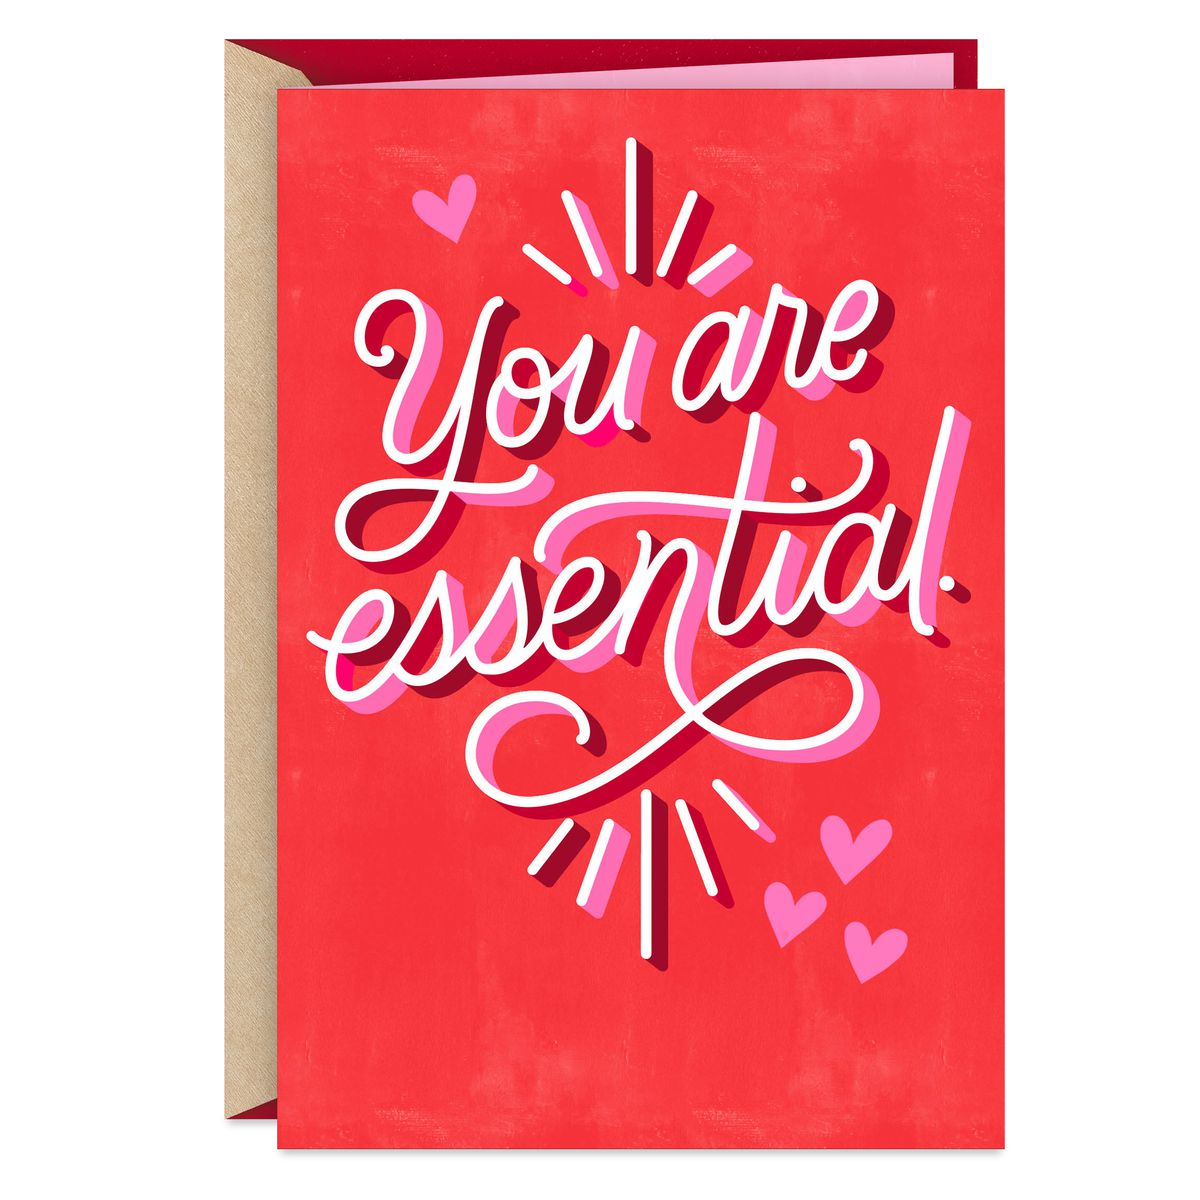 """A card that says """"You are essential"""" on the front."""